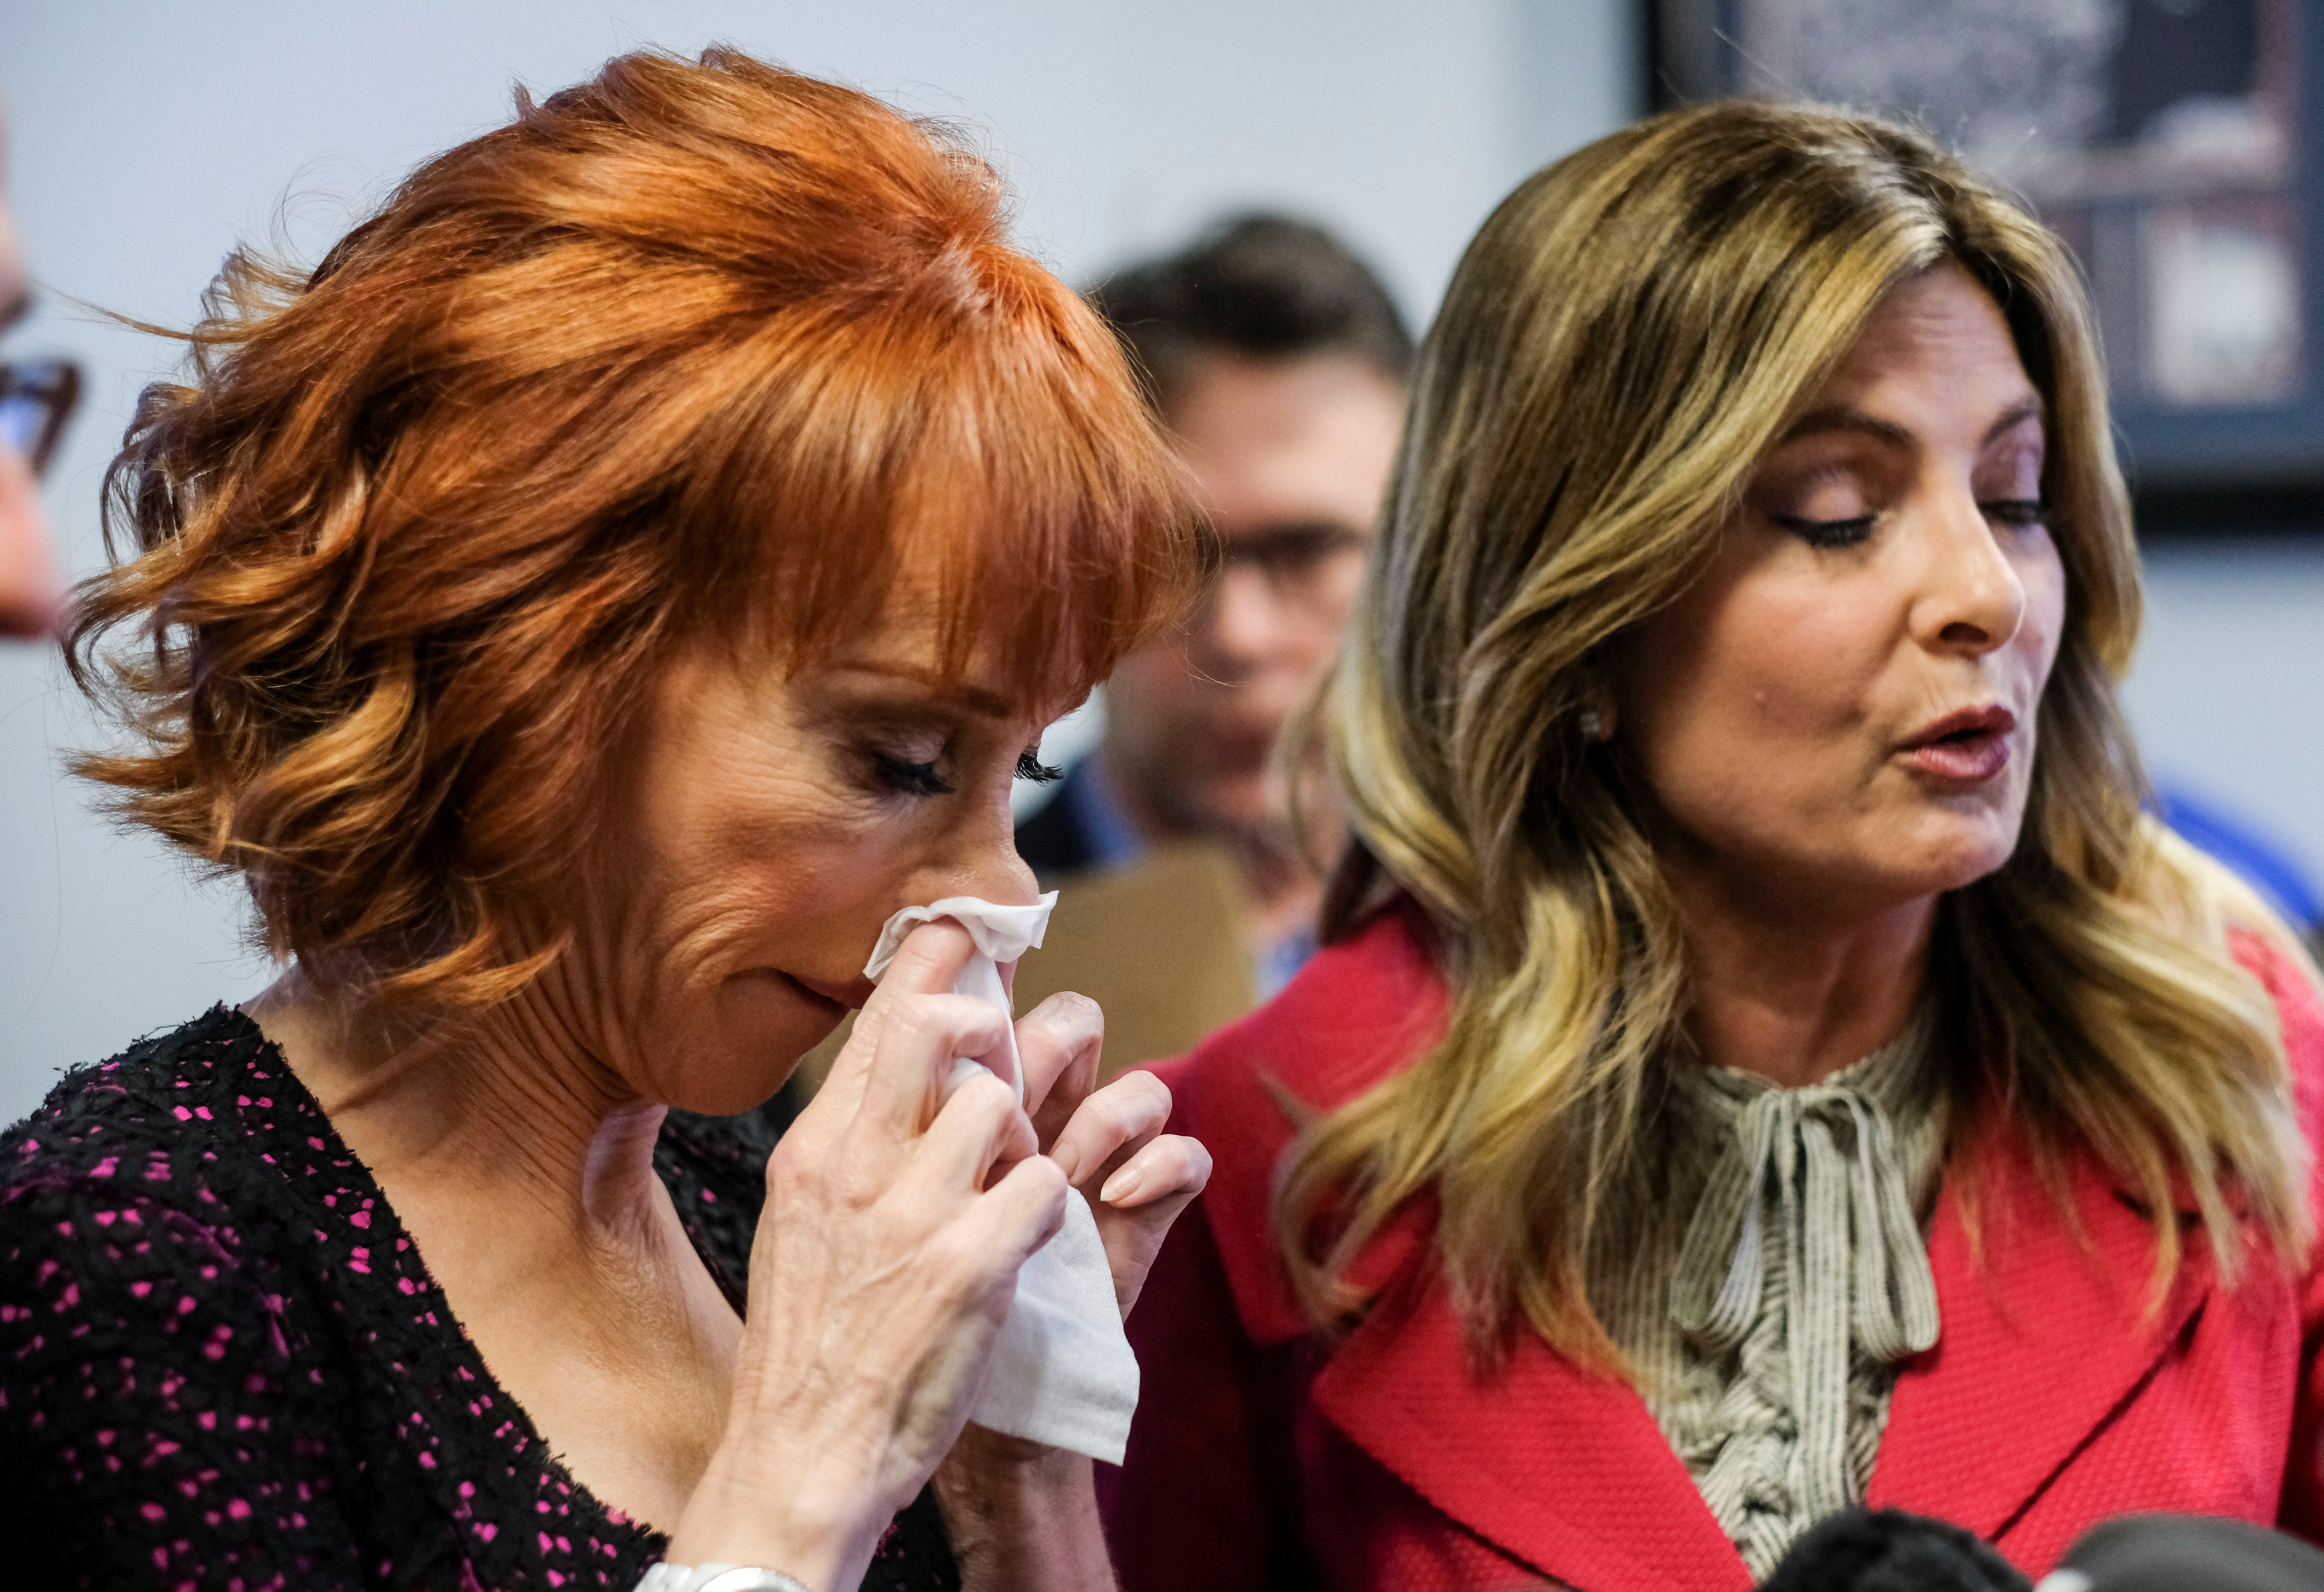 Comedian Kathy Griffin (L) wipes her nose as her attorney Lisa Bloom (R) speaks at a news conference in Woodland Hills, Los Angeles, California, U.S., June 2, 2017. REUTERS/Ringo Chiu